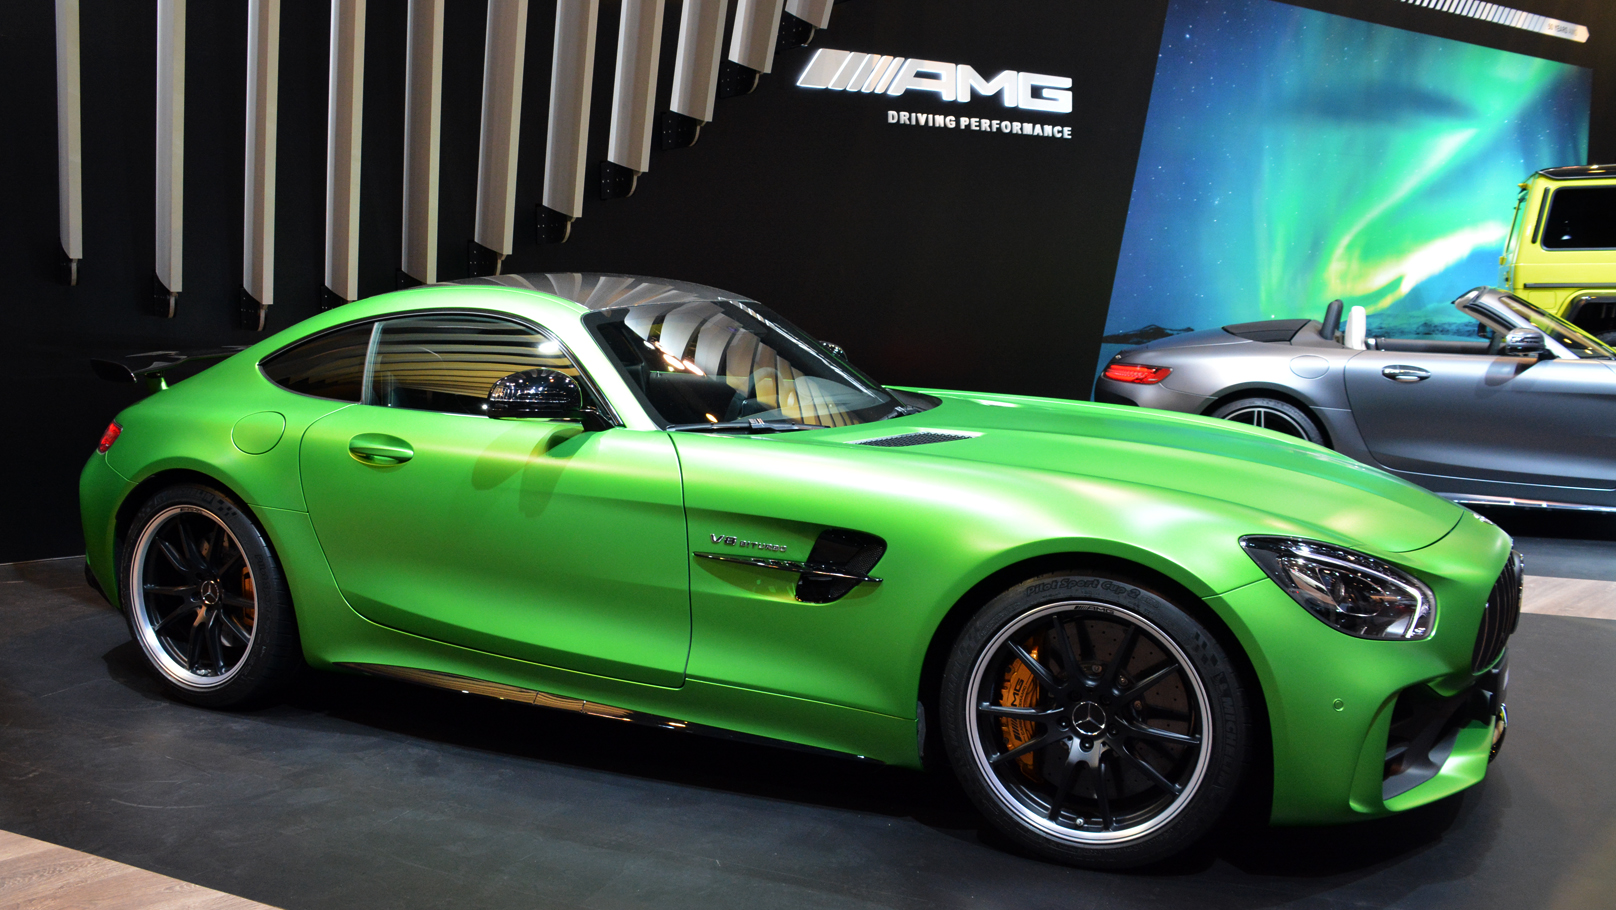 2017 canadian international auto show Mercedes AMG GT R